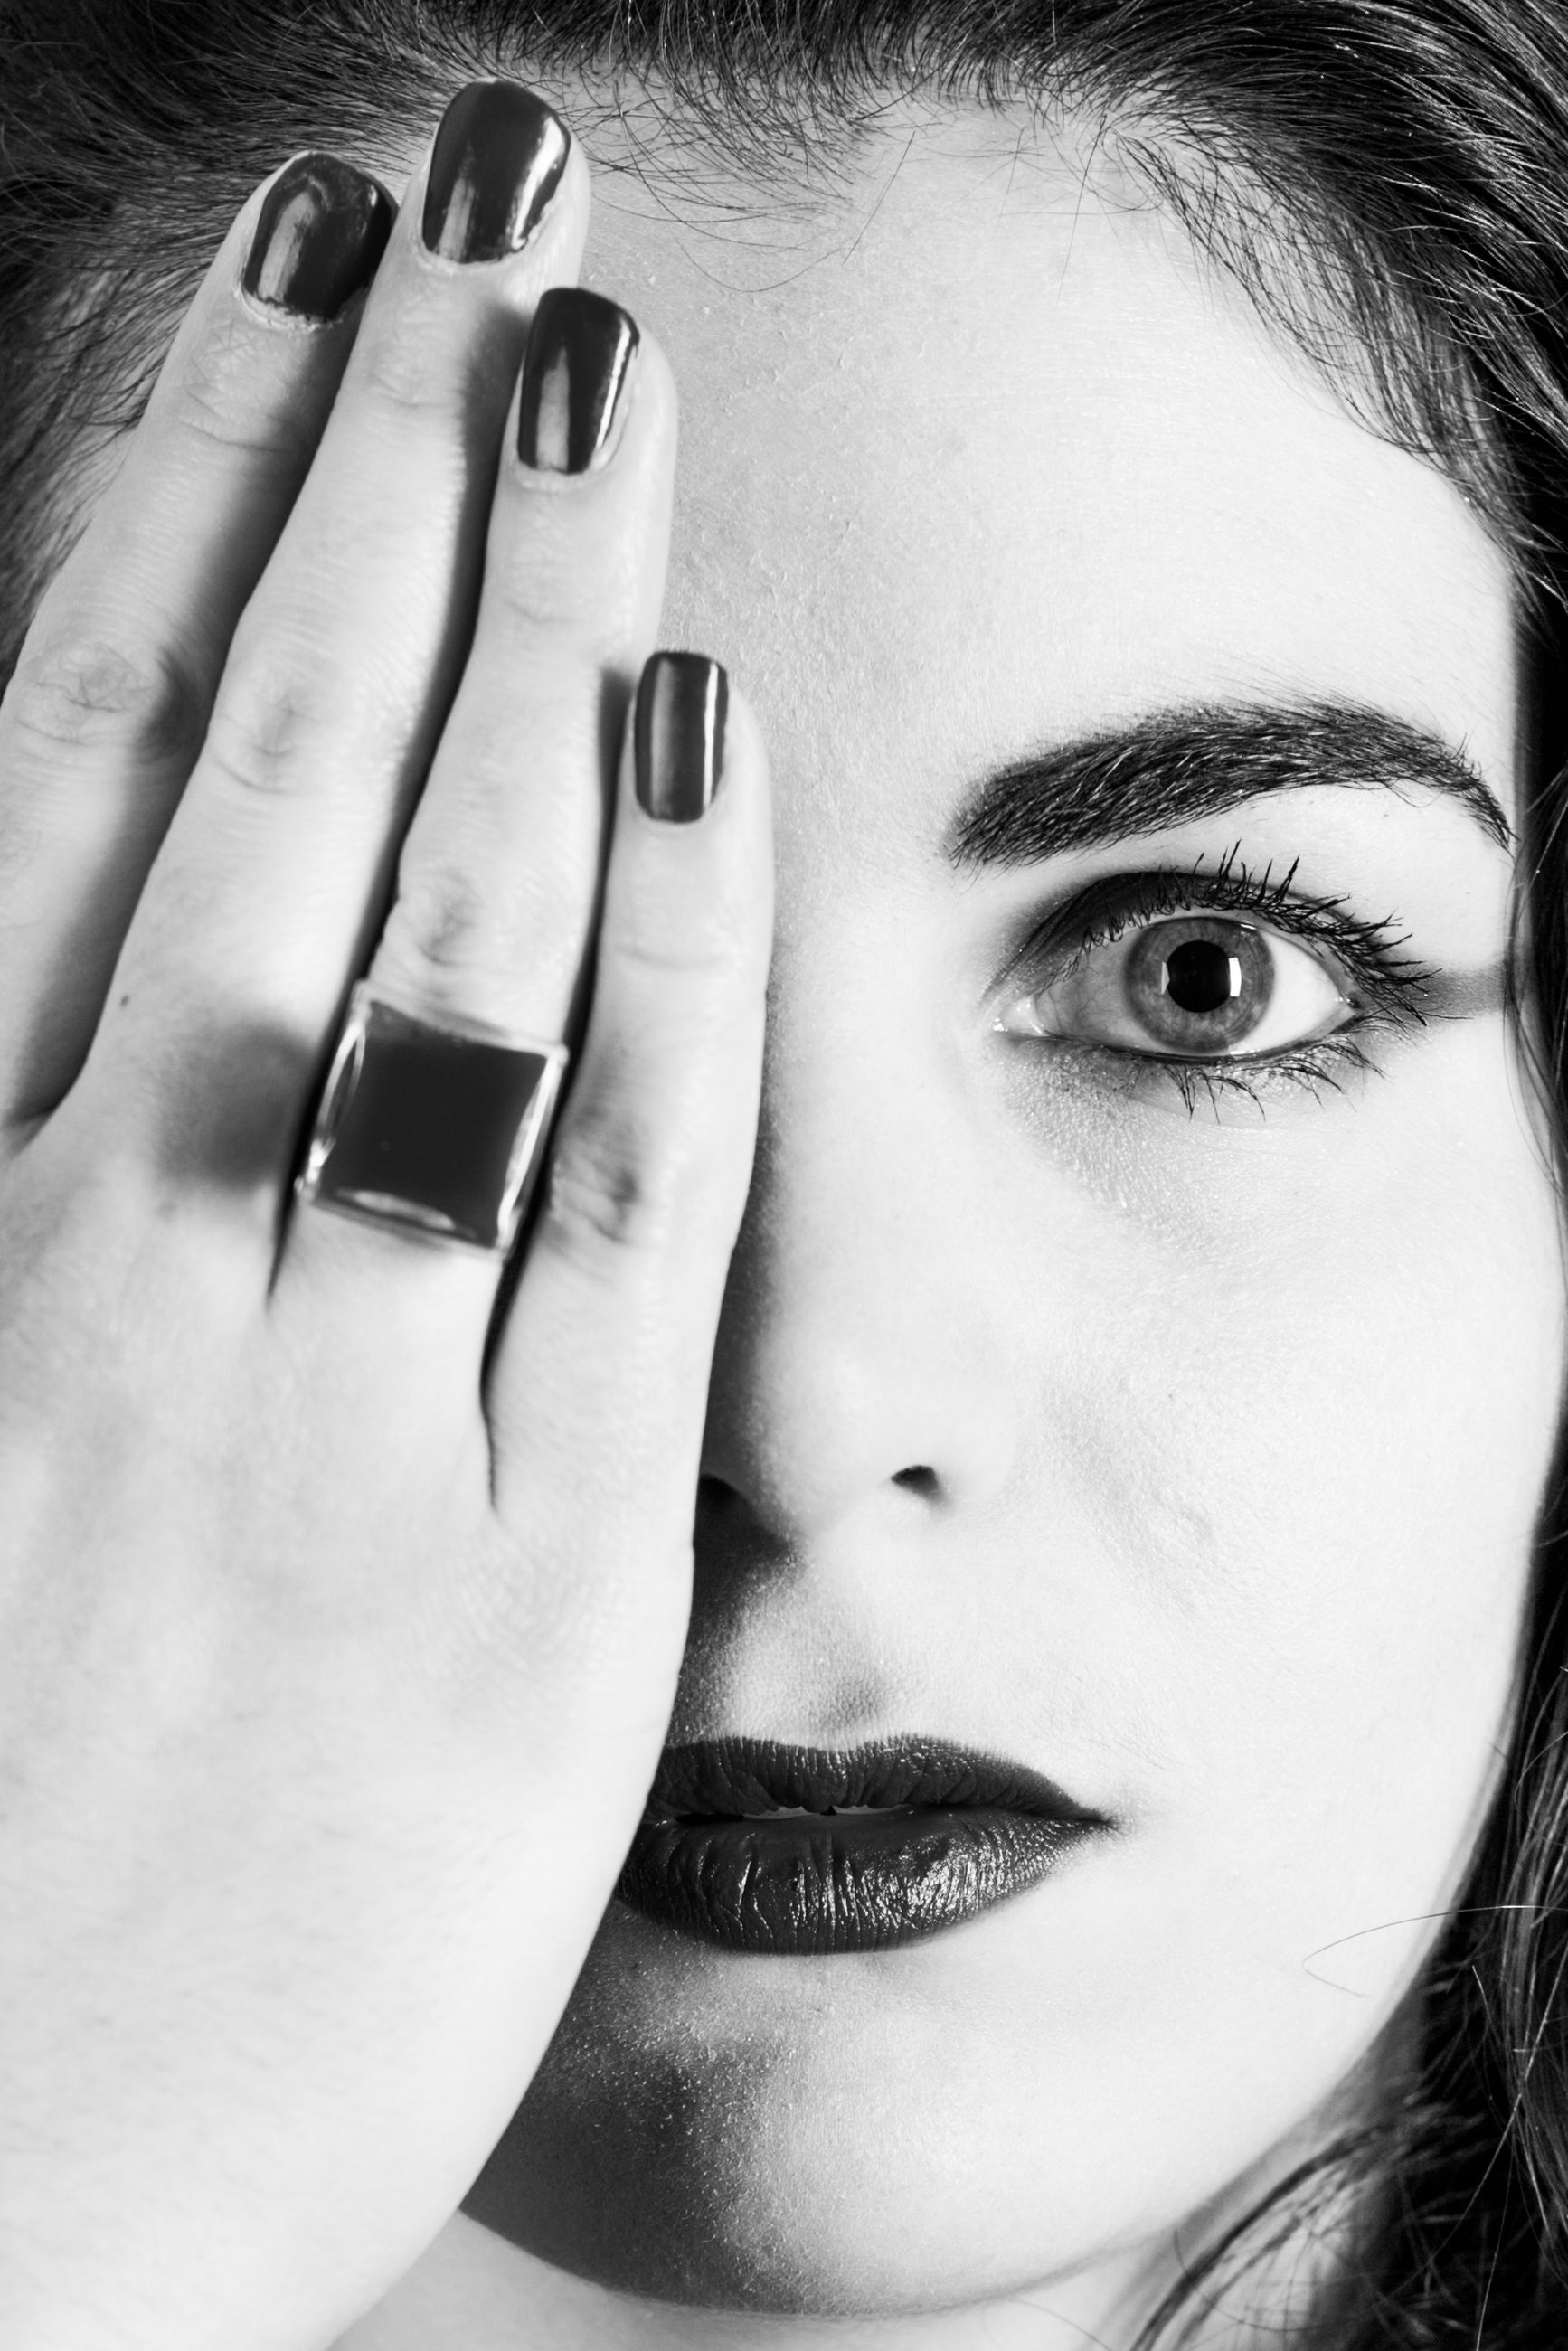 human body part, one person, portrait, body part, real people, headshot, human hand, close-up, young adult, hand, human face, lifestyles, young women, front view, women, leisure activity, indoors, looking at camera, adult, nail, beautiful woman, finger, contemplation